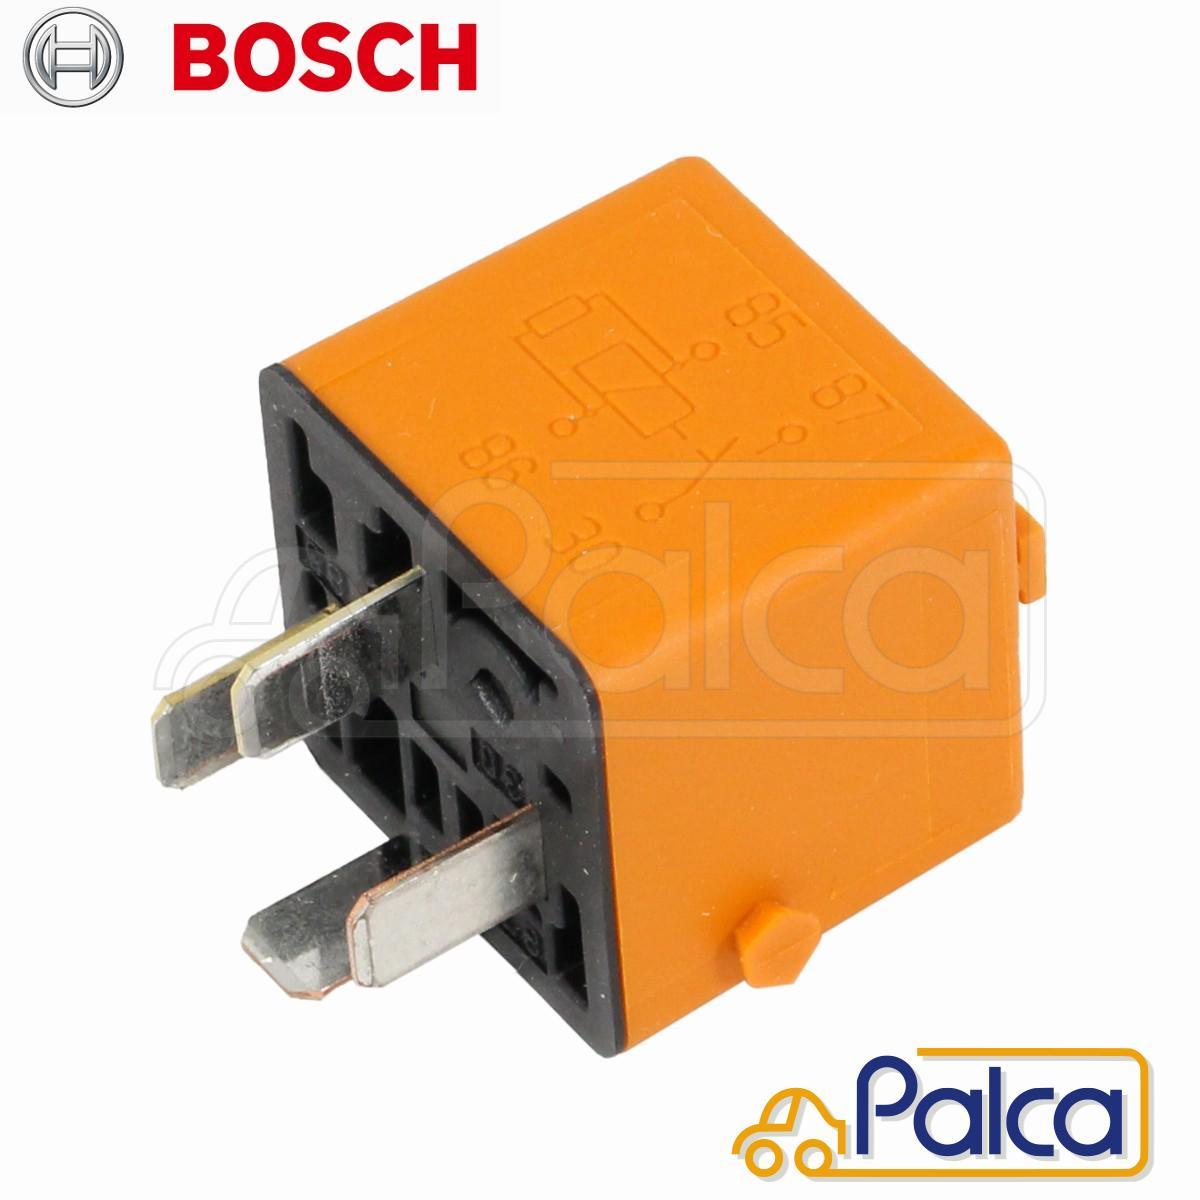 BMW multi-purpose relay E30   E36   E46   E28   E34   E24   E23   E32   E38    E31   Z1   Z3 E36   2500 2800   Product made in BOSCH 61361378238